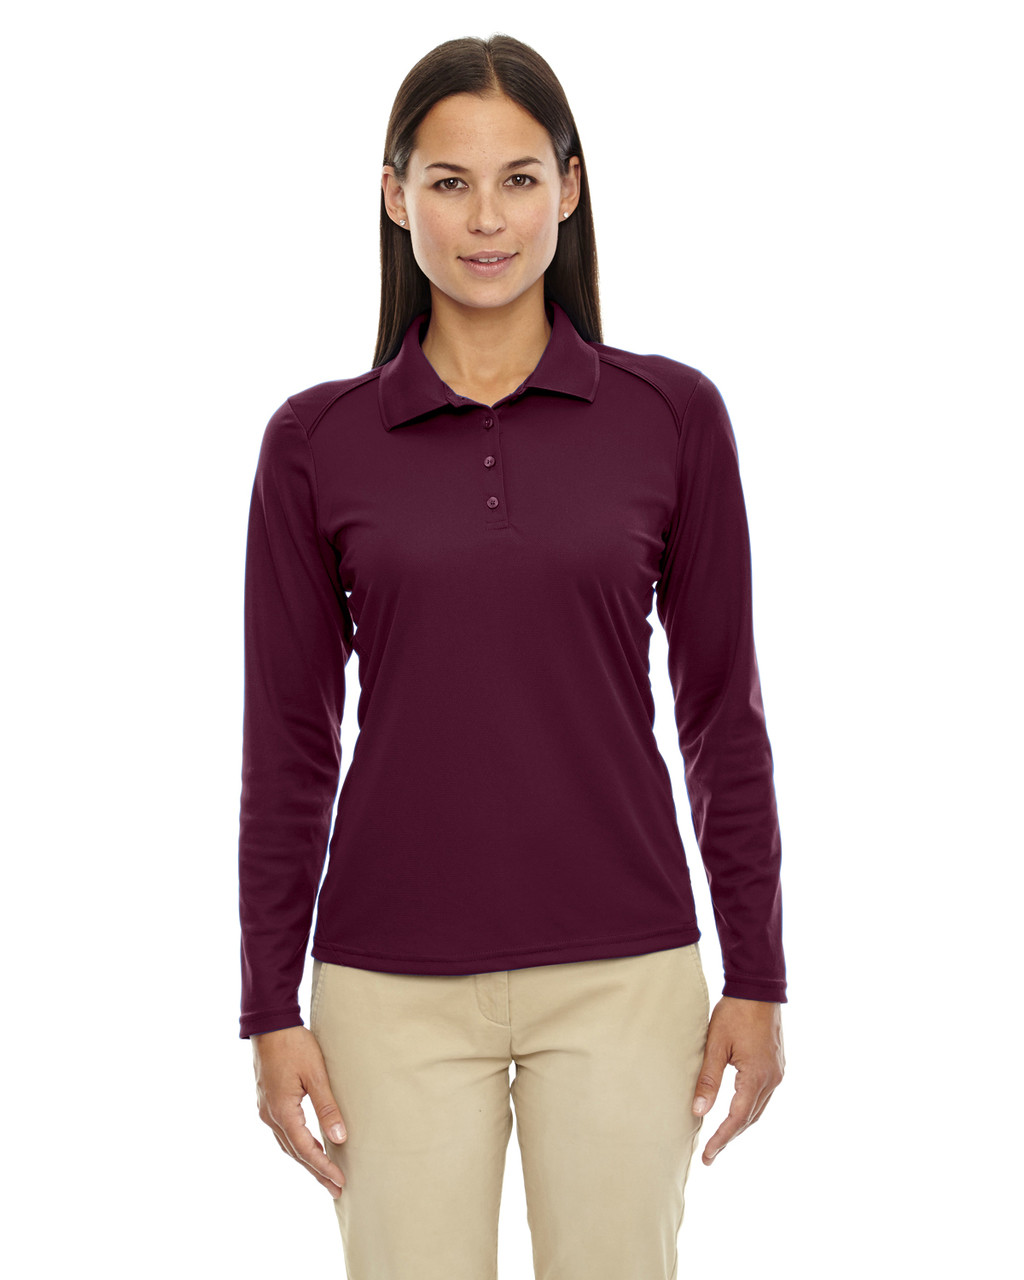 Burgundy 75111 Ash City - Extreme Eperformance Ladies' Long-Sleeve Polo Shirt